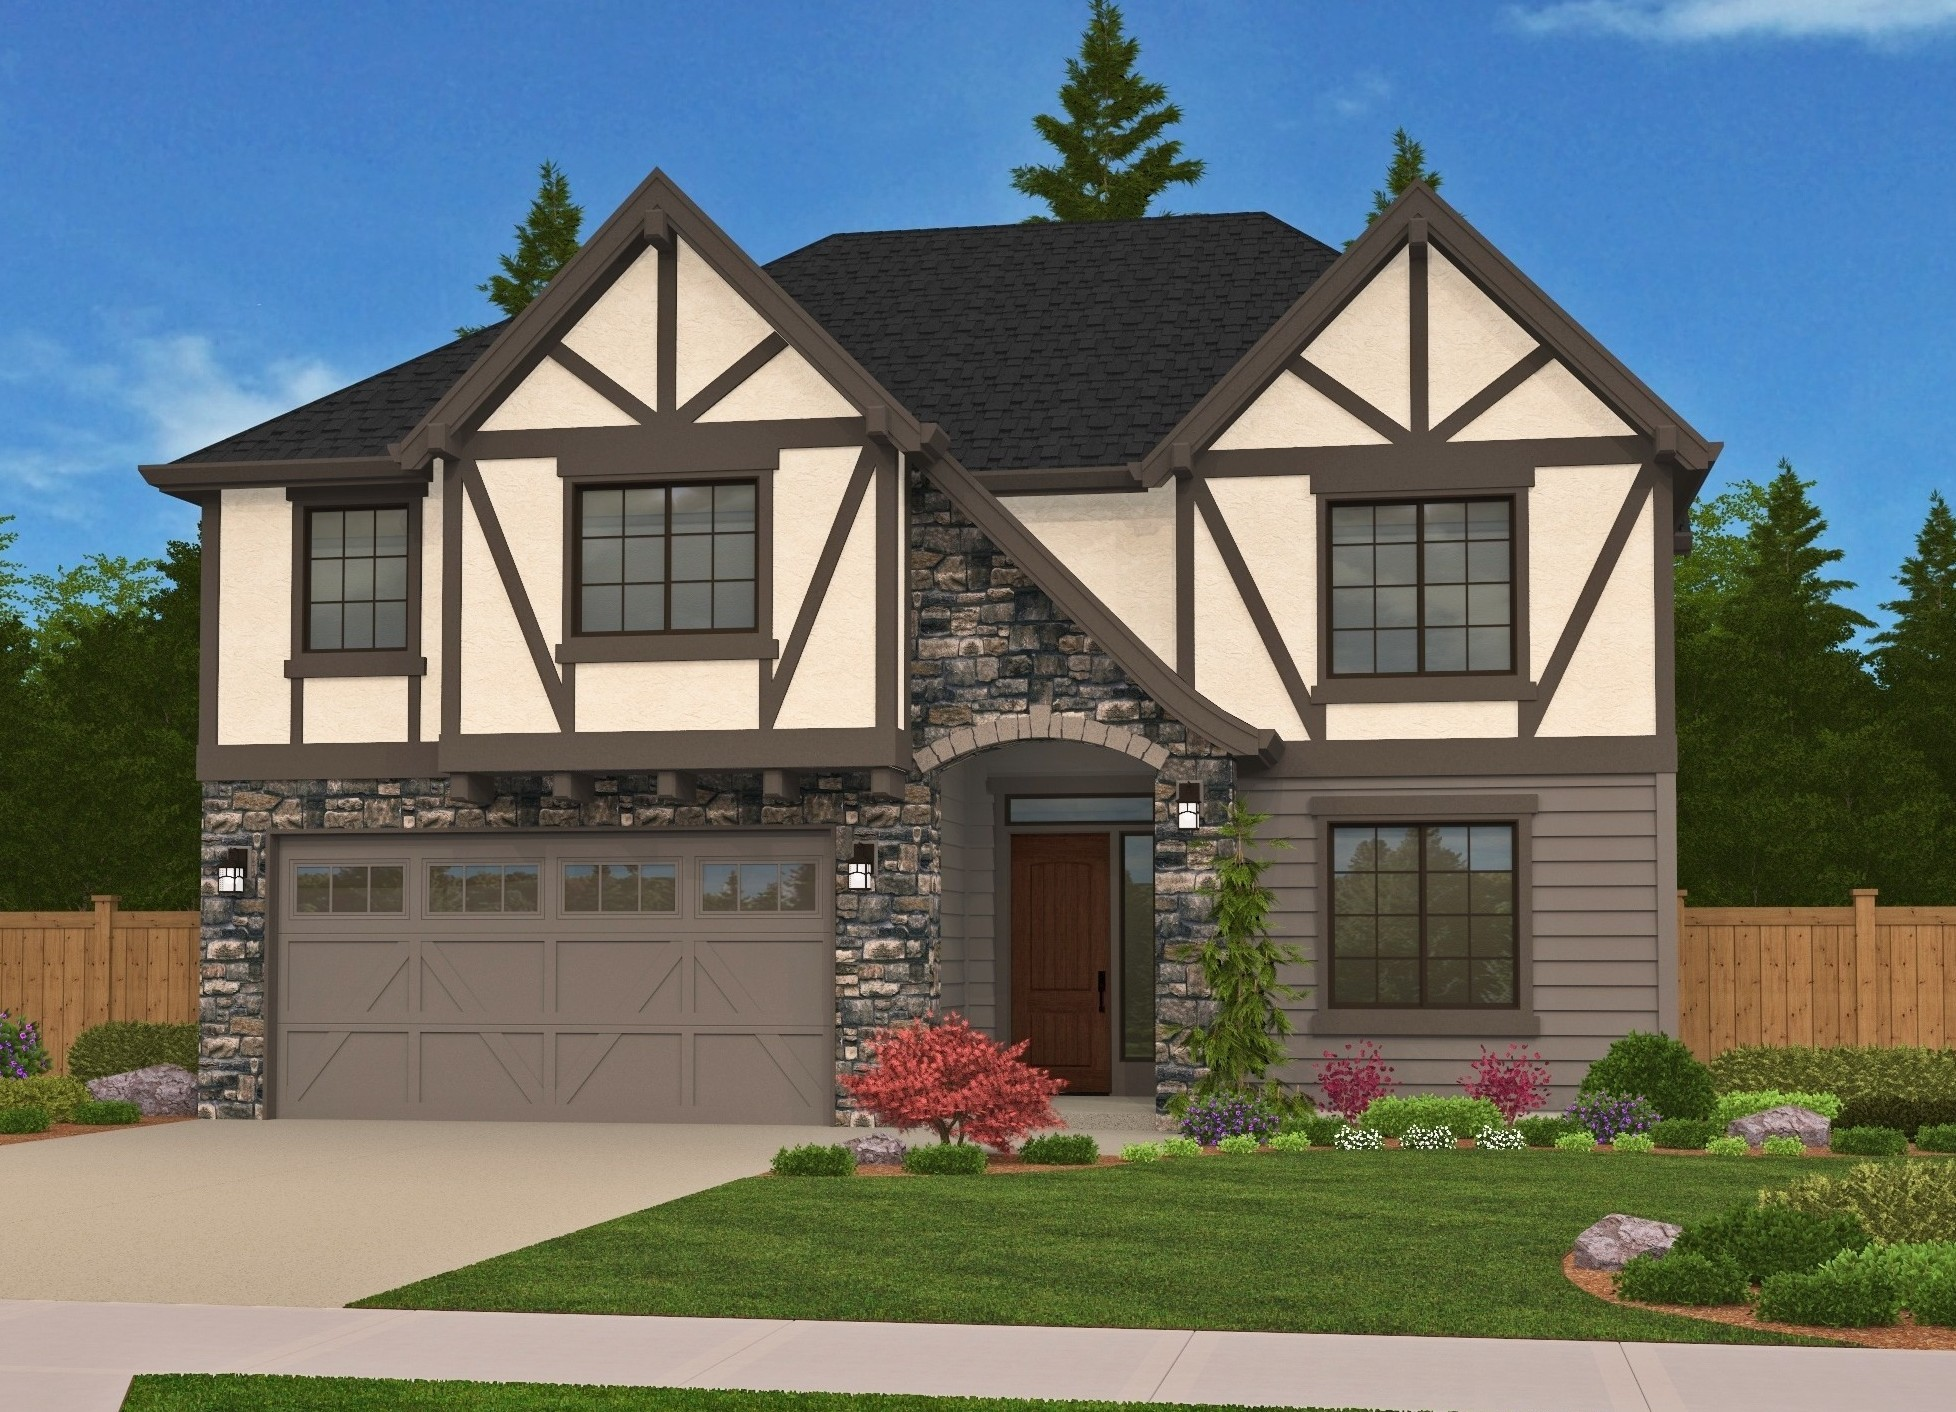 Bavaria house plan bungalow house plans cottage house for Old world style house plans